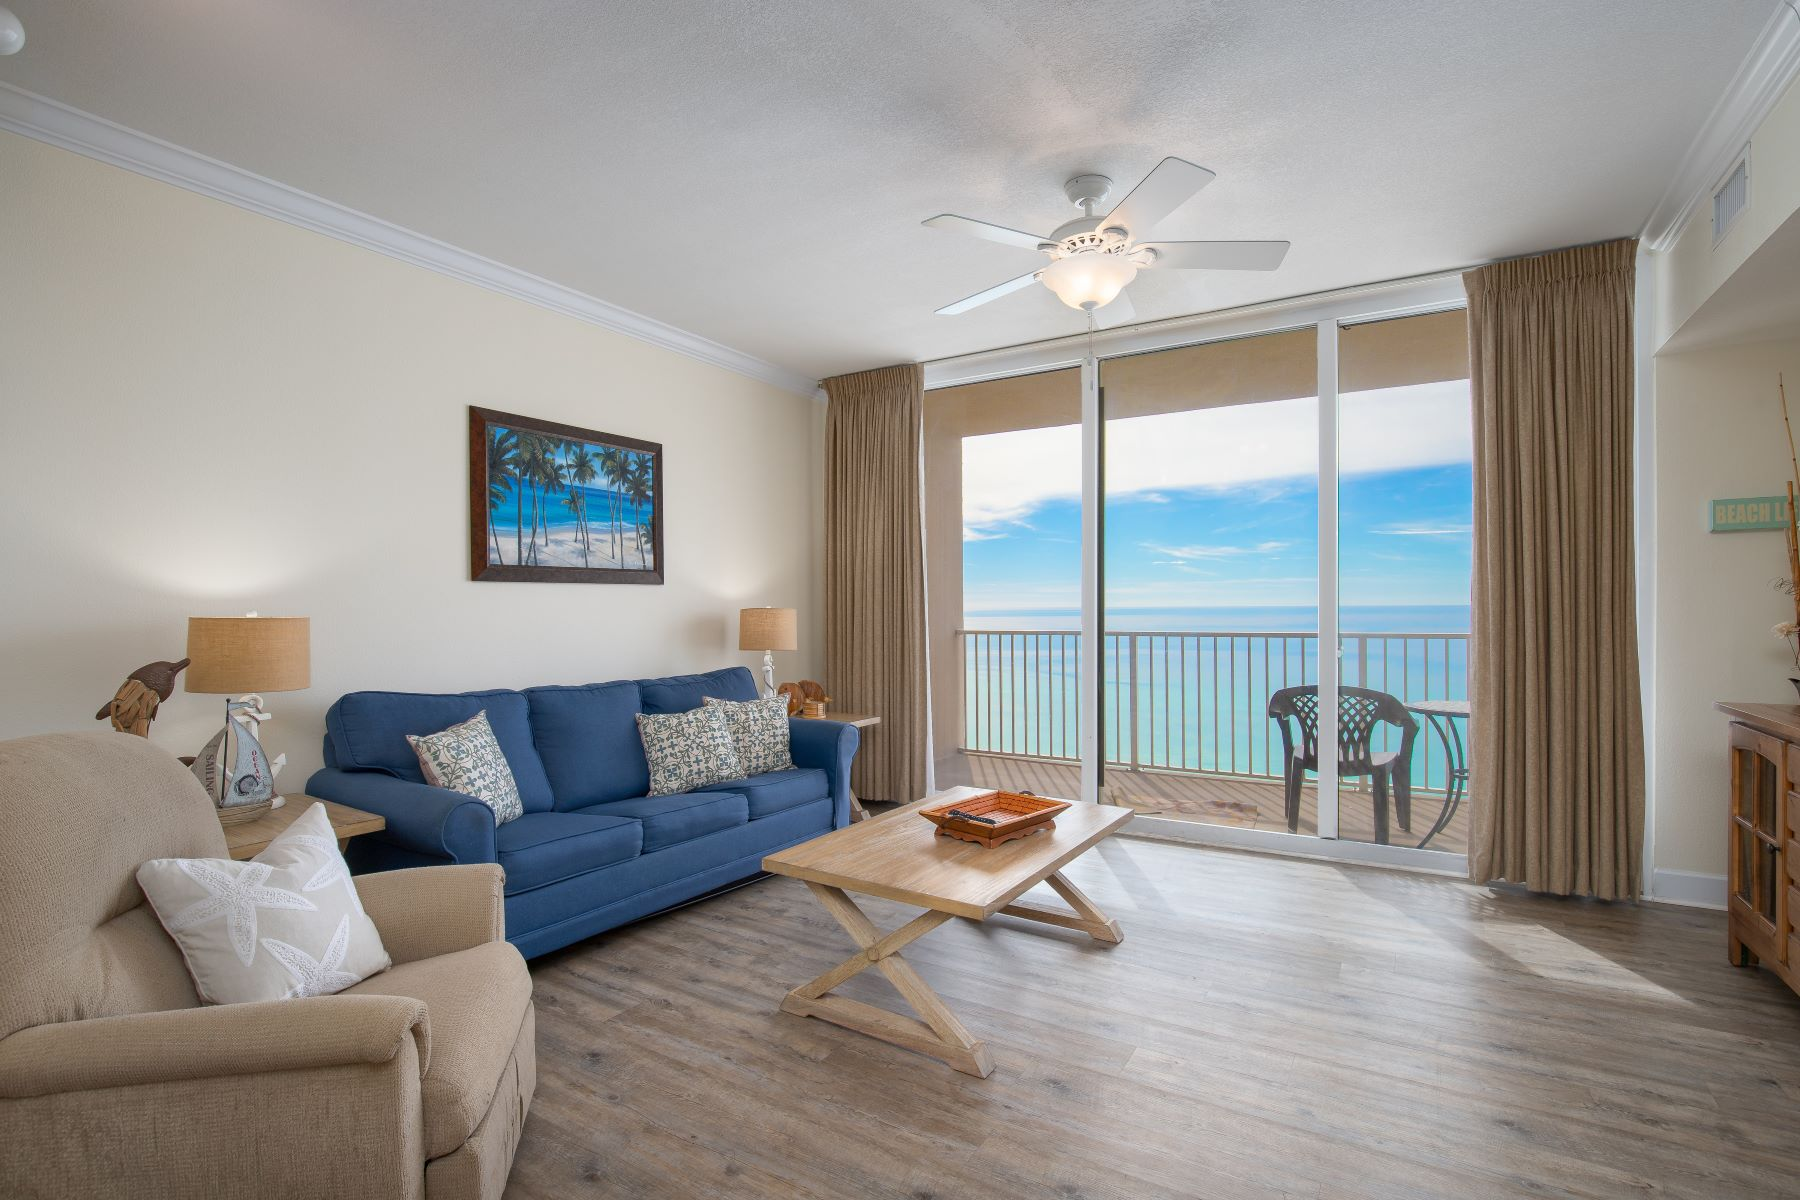 Condominiums for Sale at Beachfront Condo in Excellent Condition with Amazing Views 16819 Front Beach Road 815 Panama City Beach, Florida 32413 United States